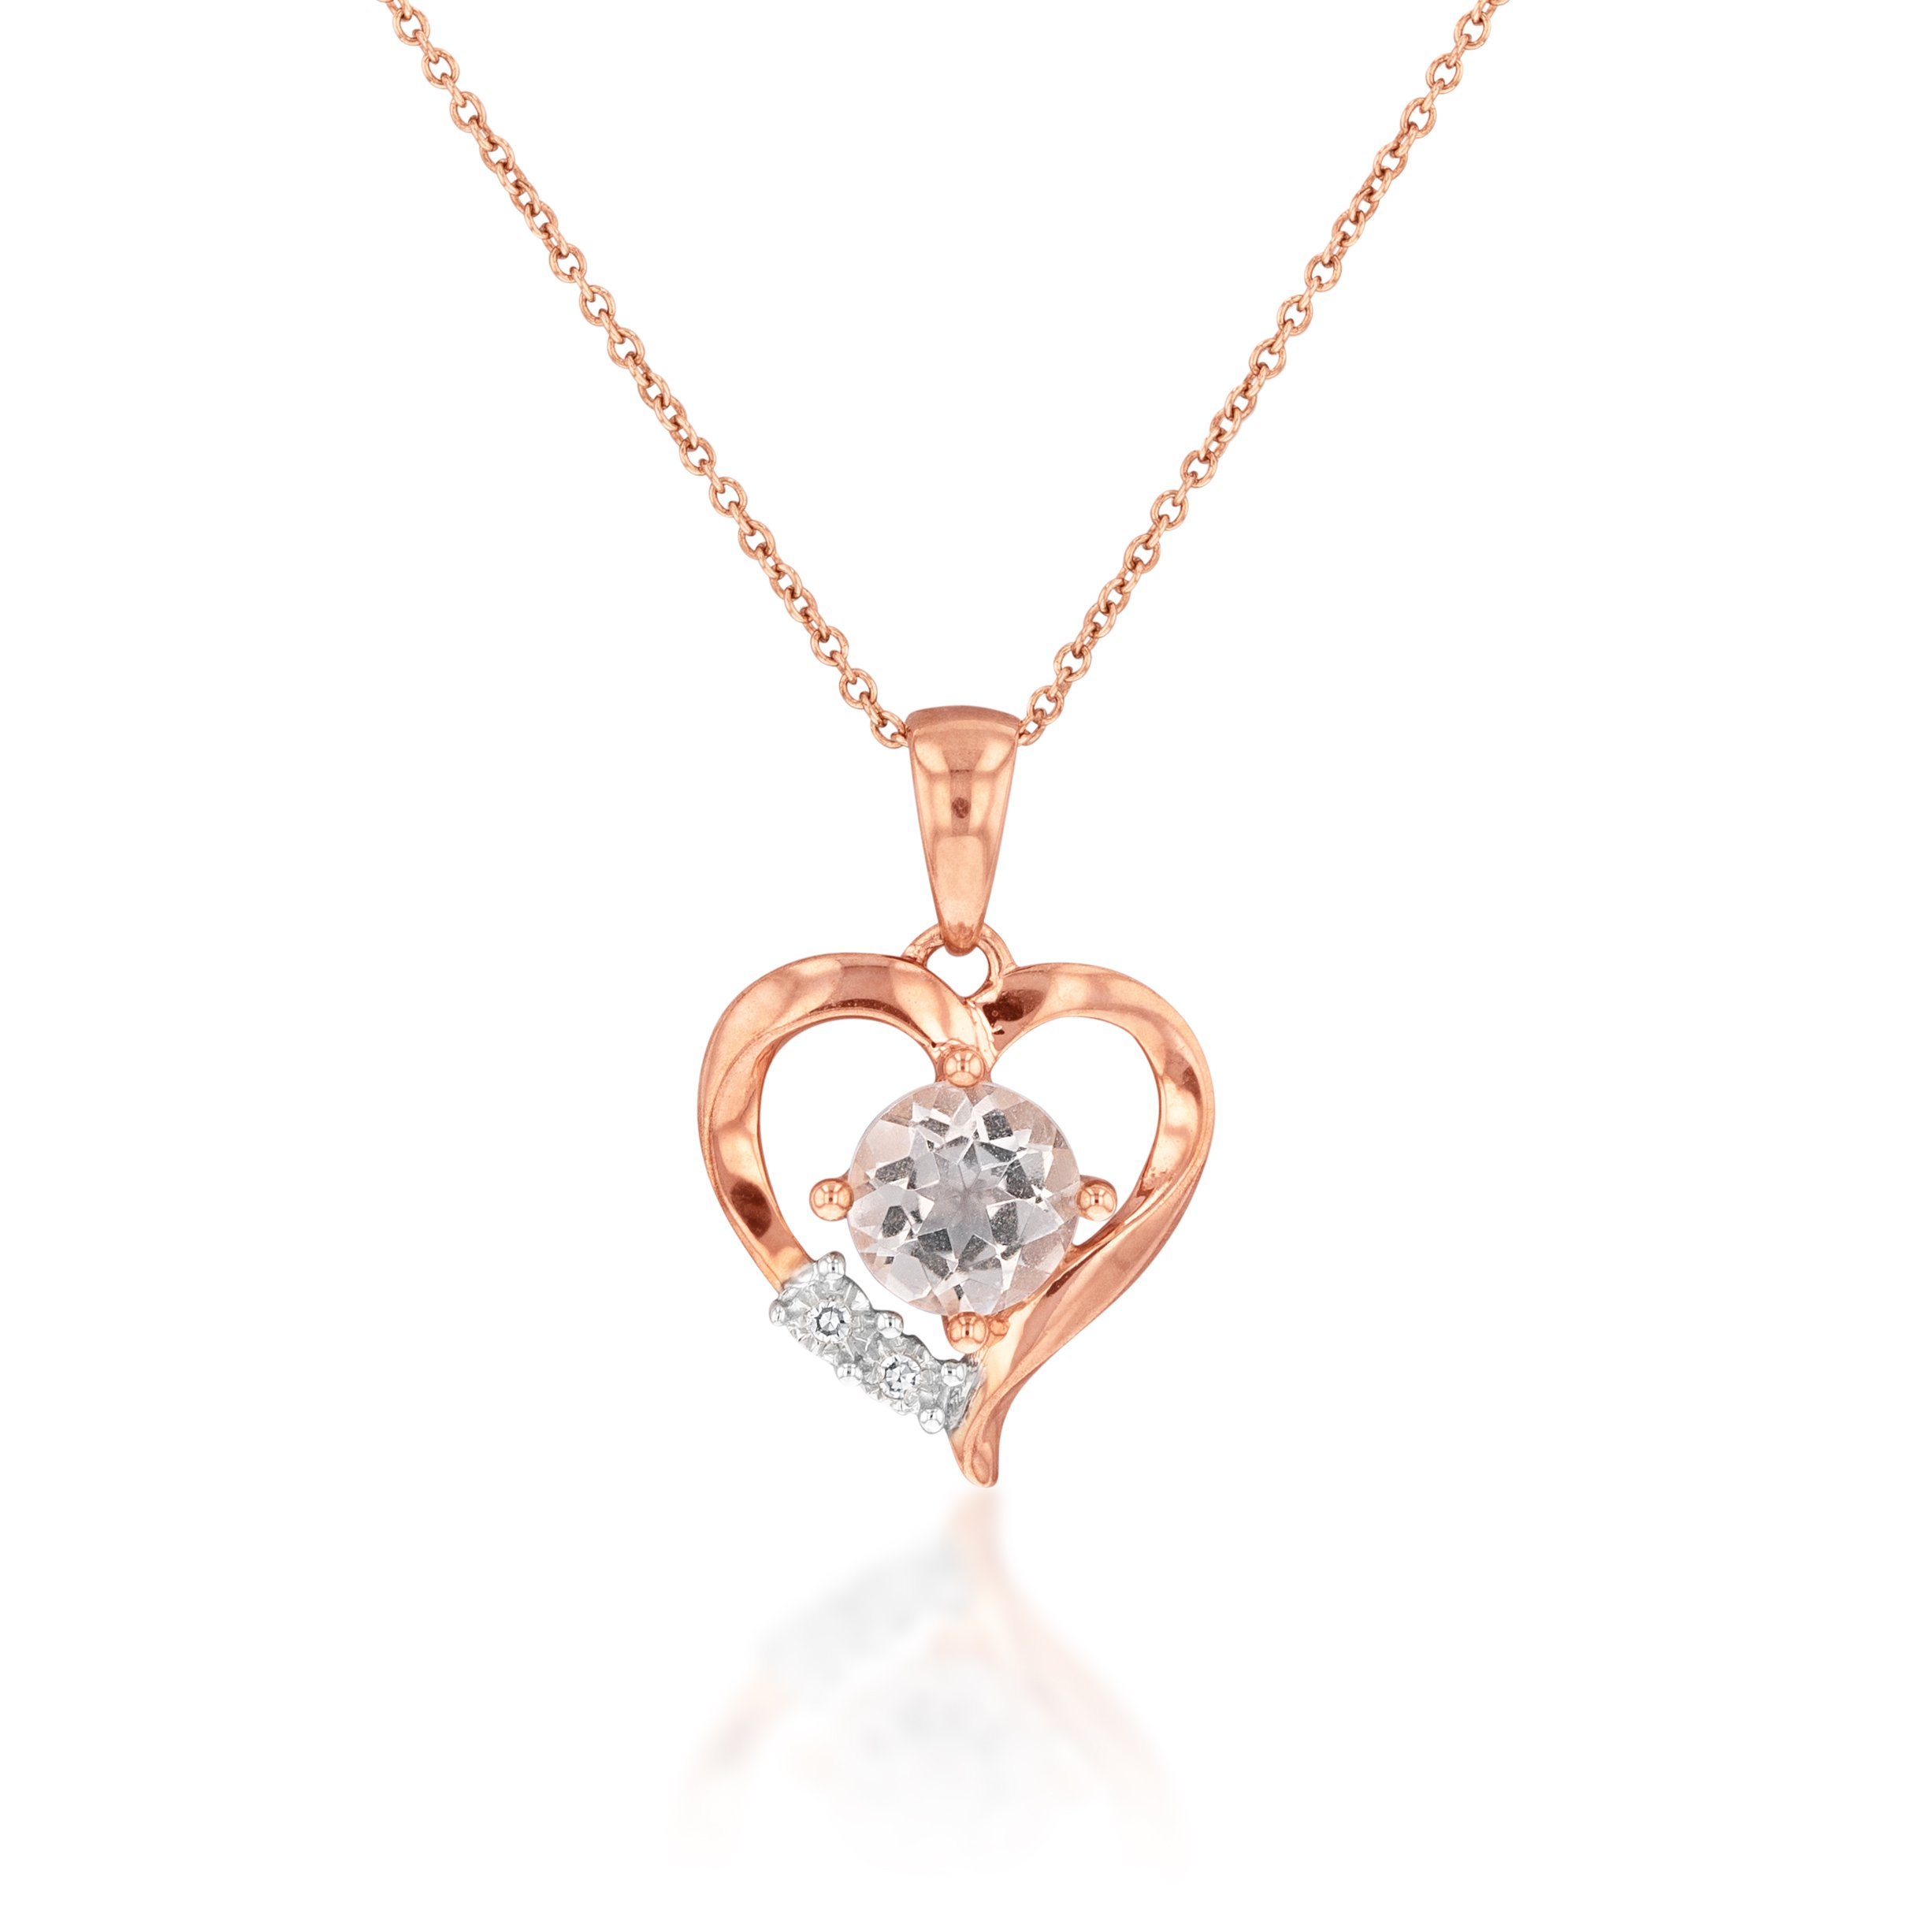 9ct Rose Gold Morganite & Diamond Heart Pendant with 44cm Chain Included